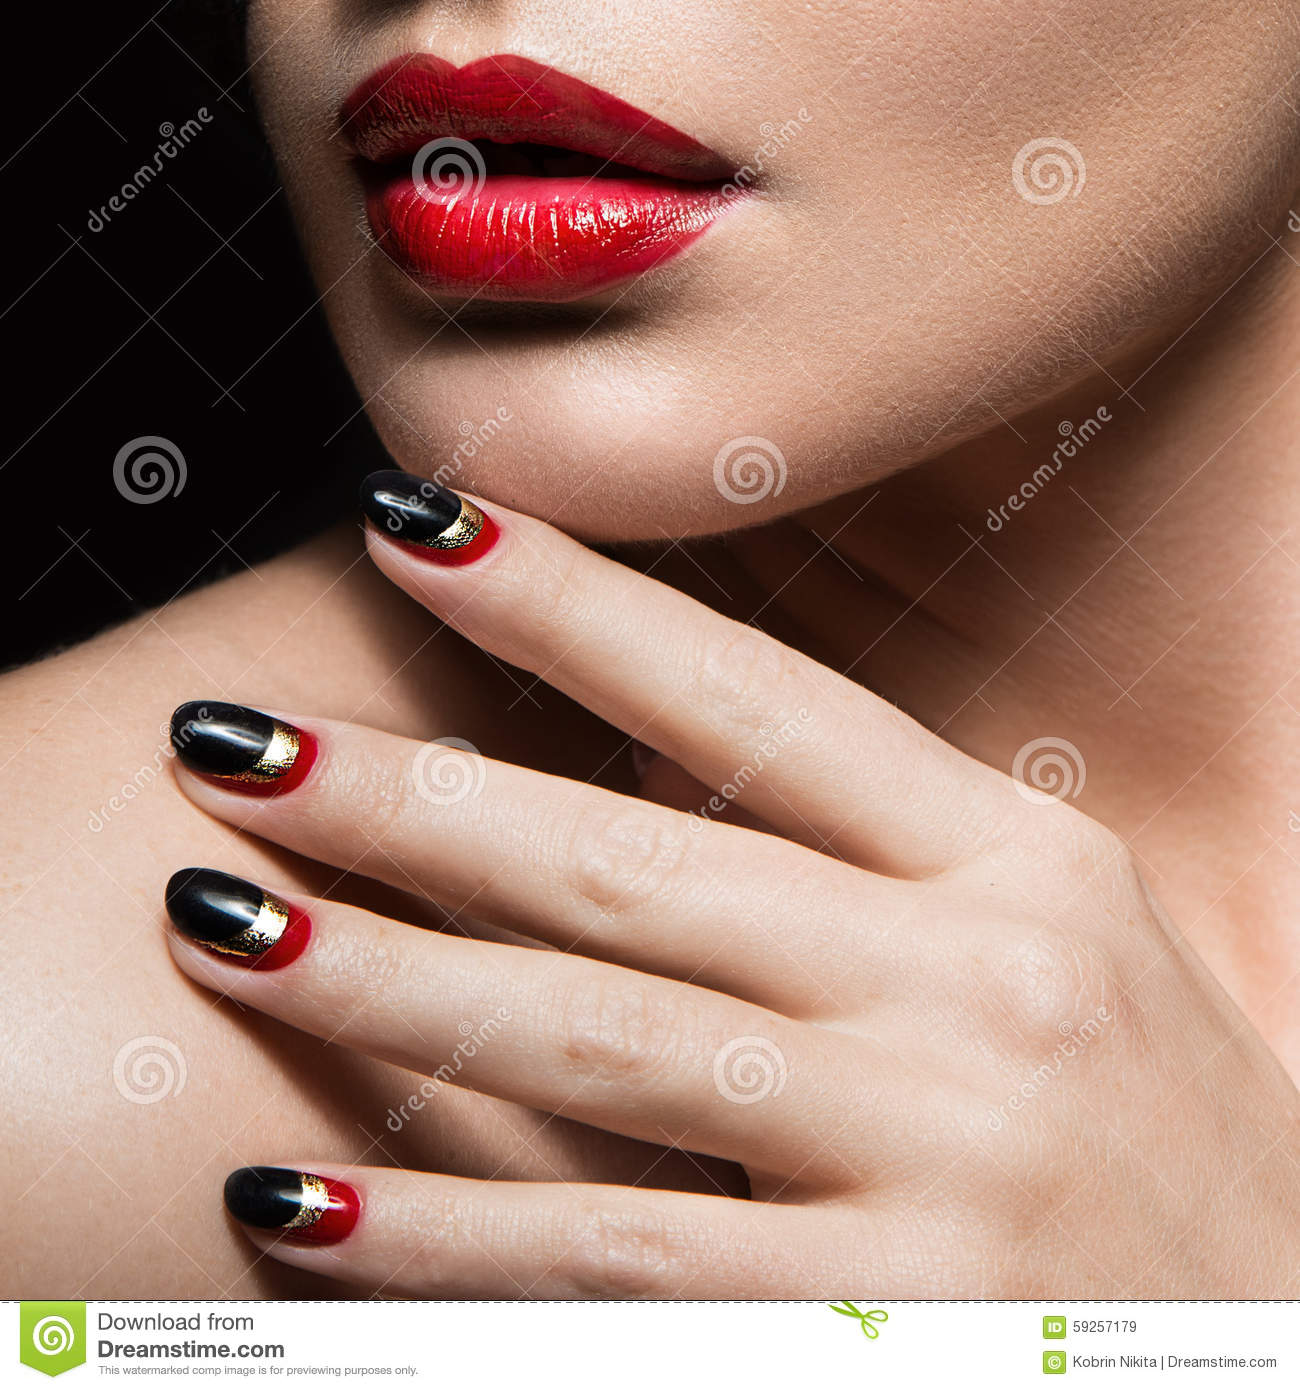 Download Beautiful Girl With Black And Red Nails Design Stock Image